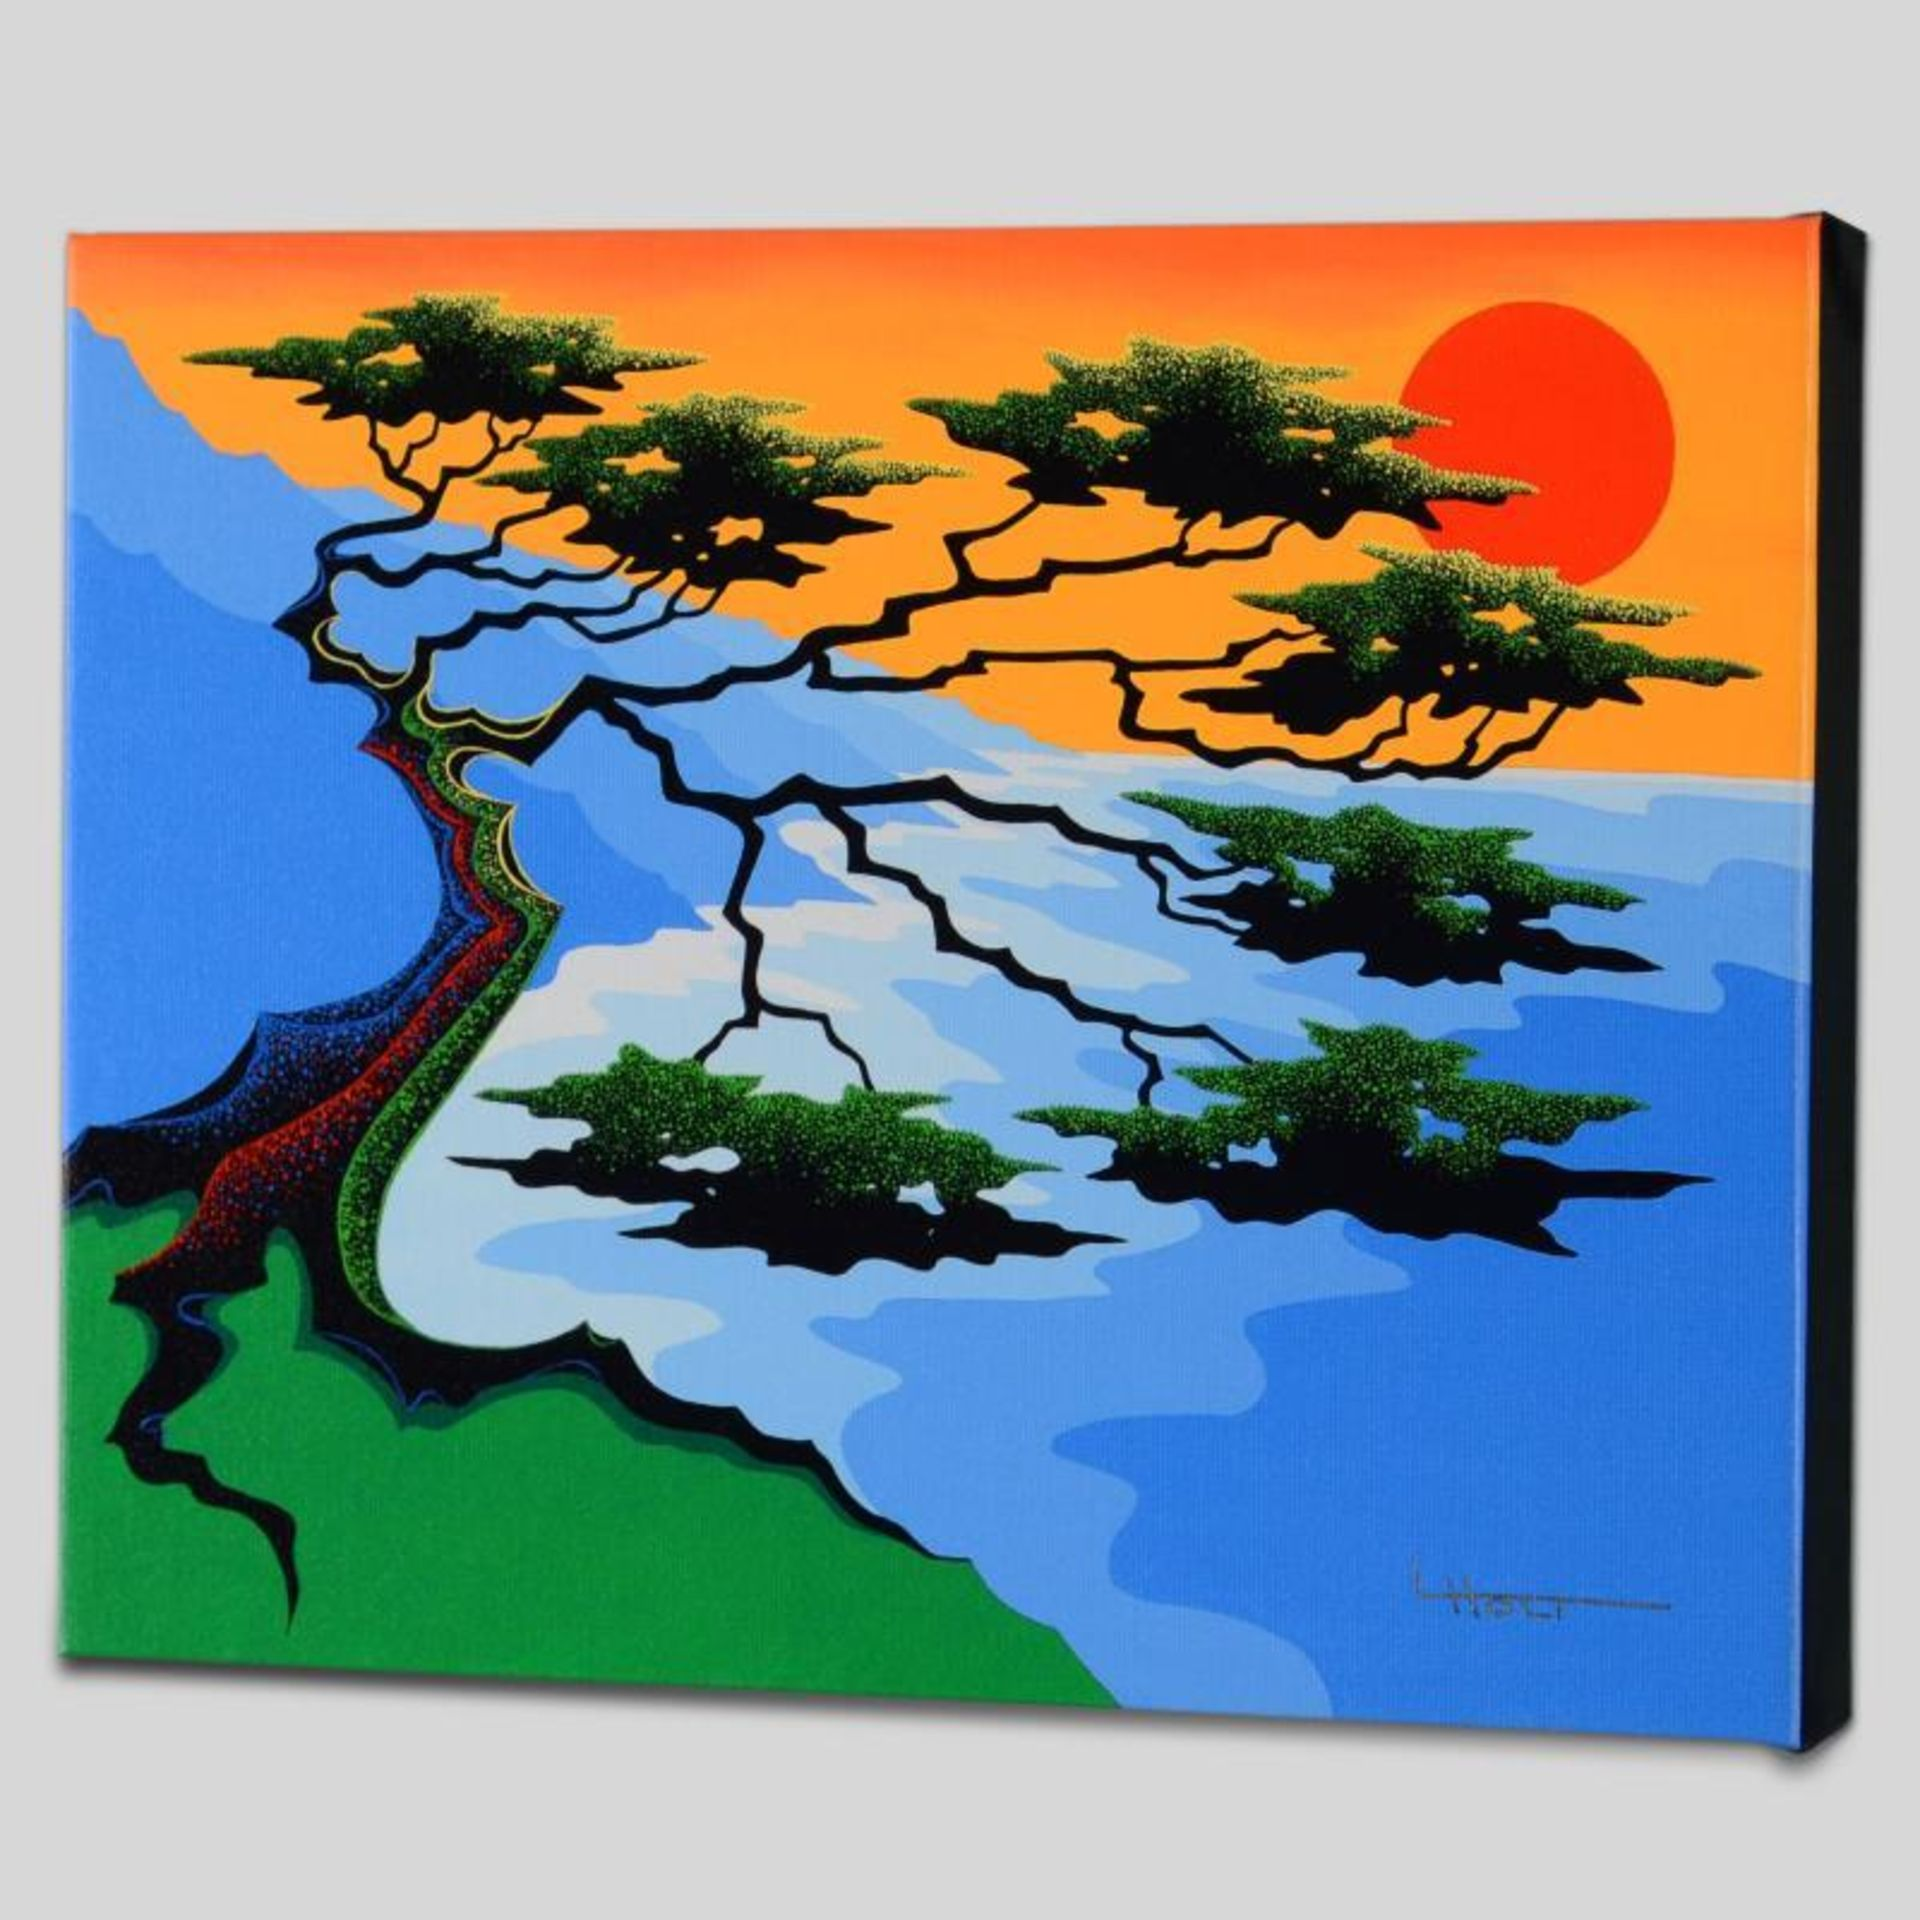 """Sunset"" Limited Edition Giclee on Canvas by Larissa Holt, Numbered and Signed. - Image 2 of 2"